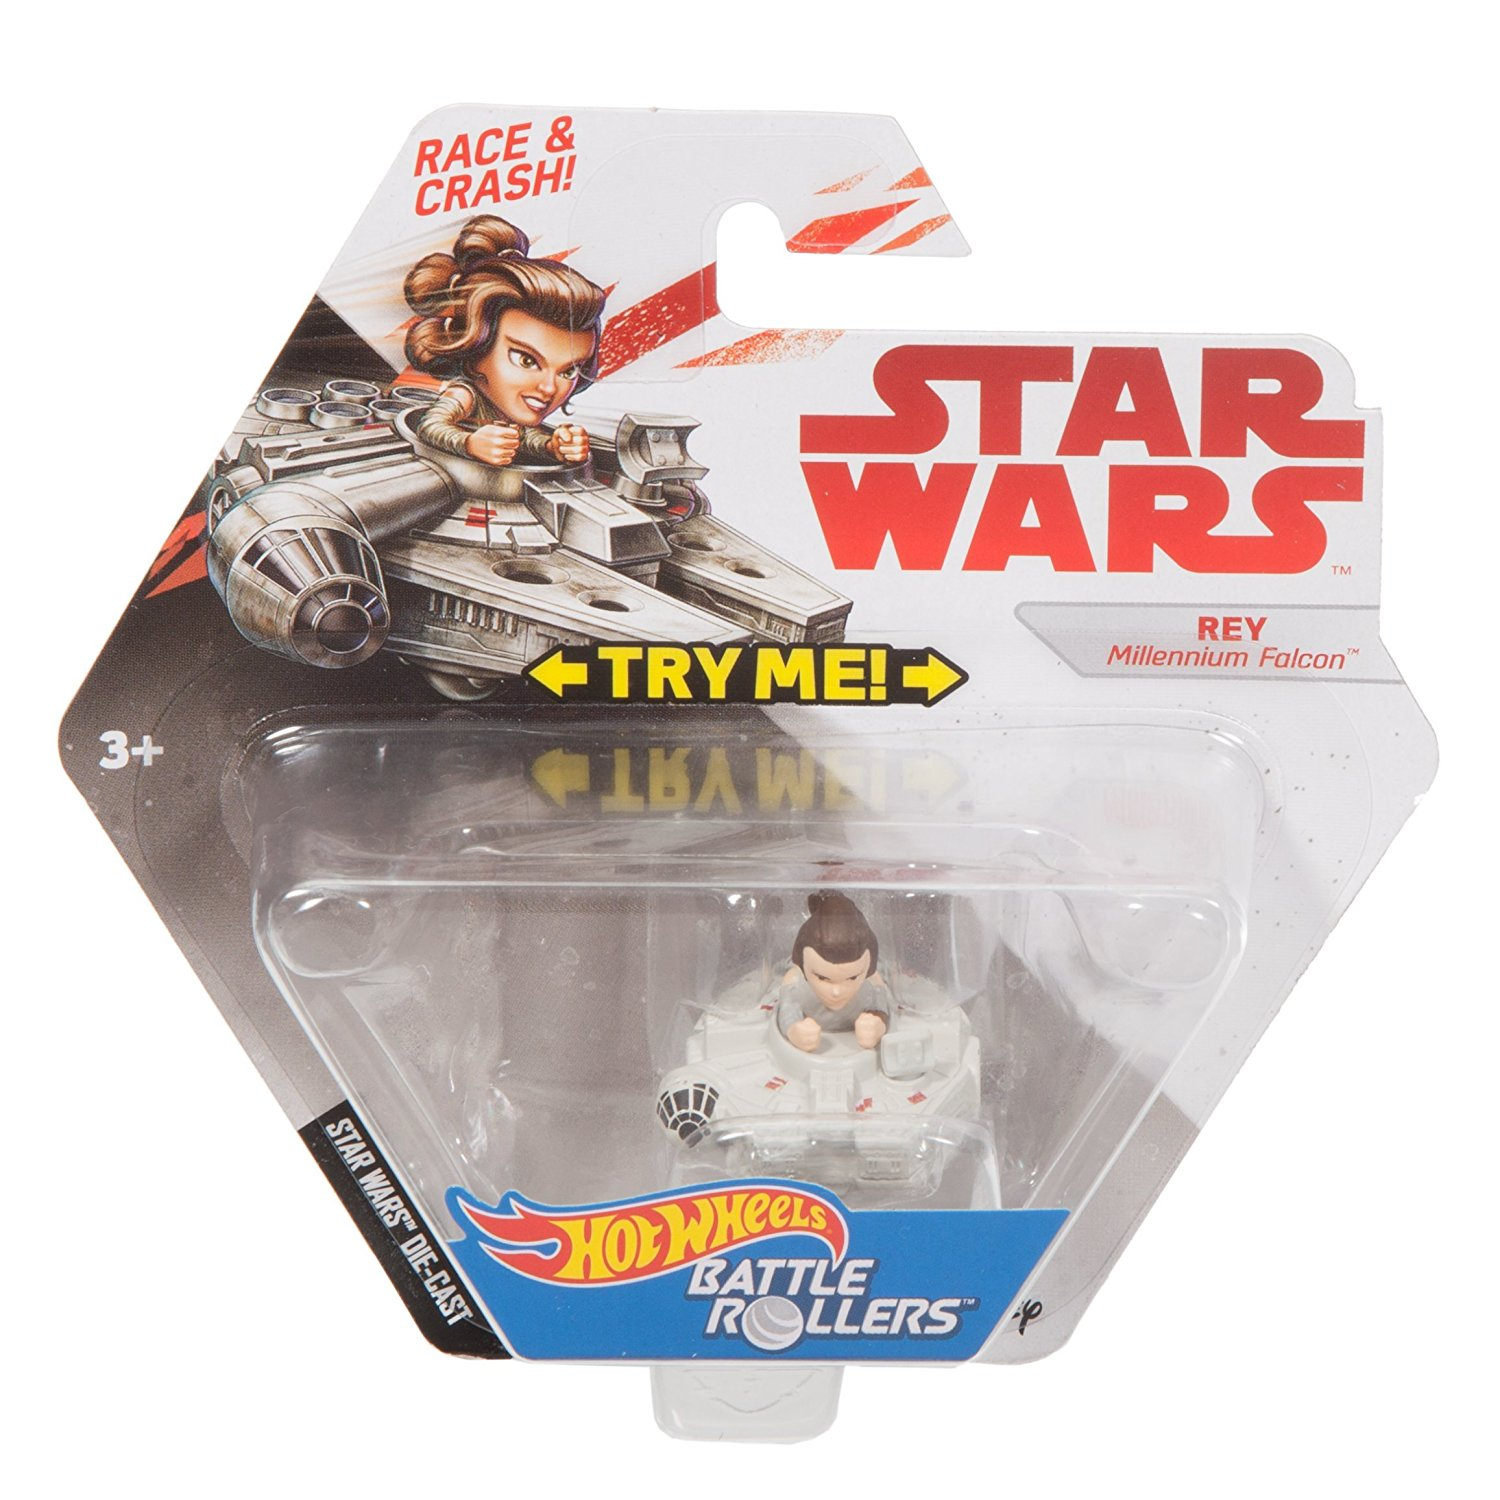 TLJ Rey Battle Rollers Vehicle Toy 1